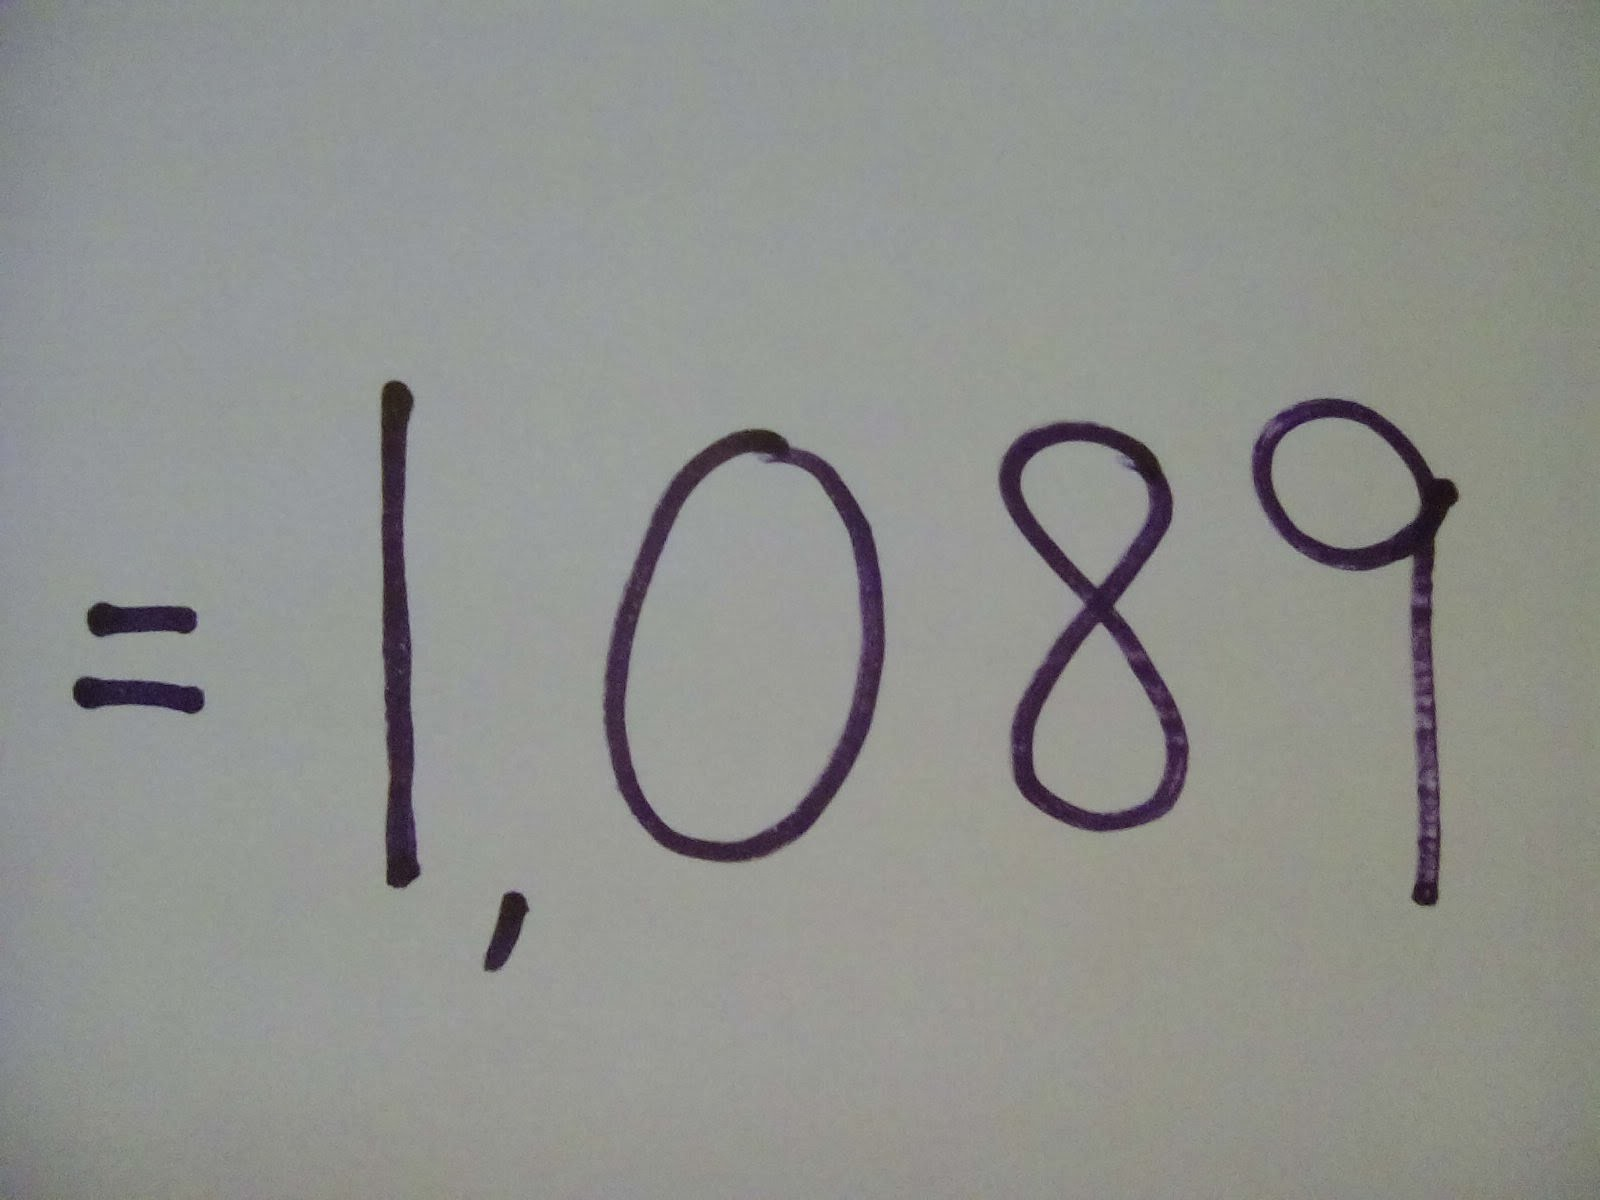 """How to do a Simple Math Trick """"The Answer is Always 1089"""" - Step by Step Instructions-Tutorial"""